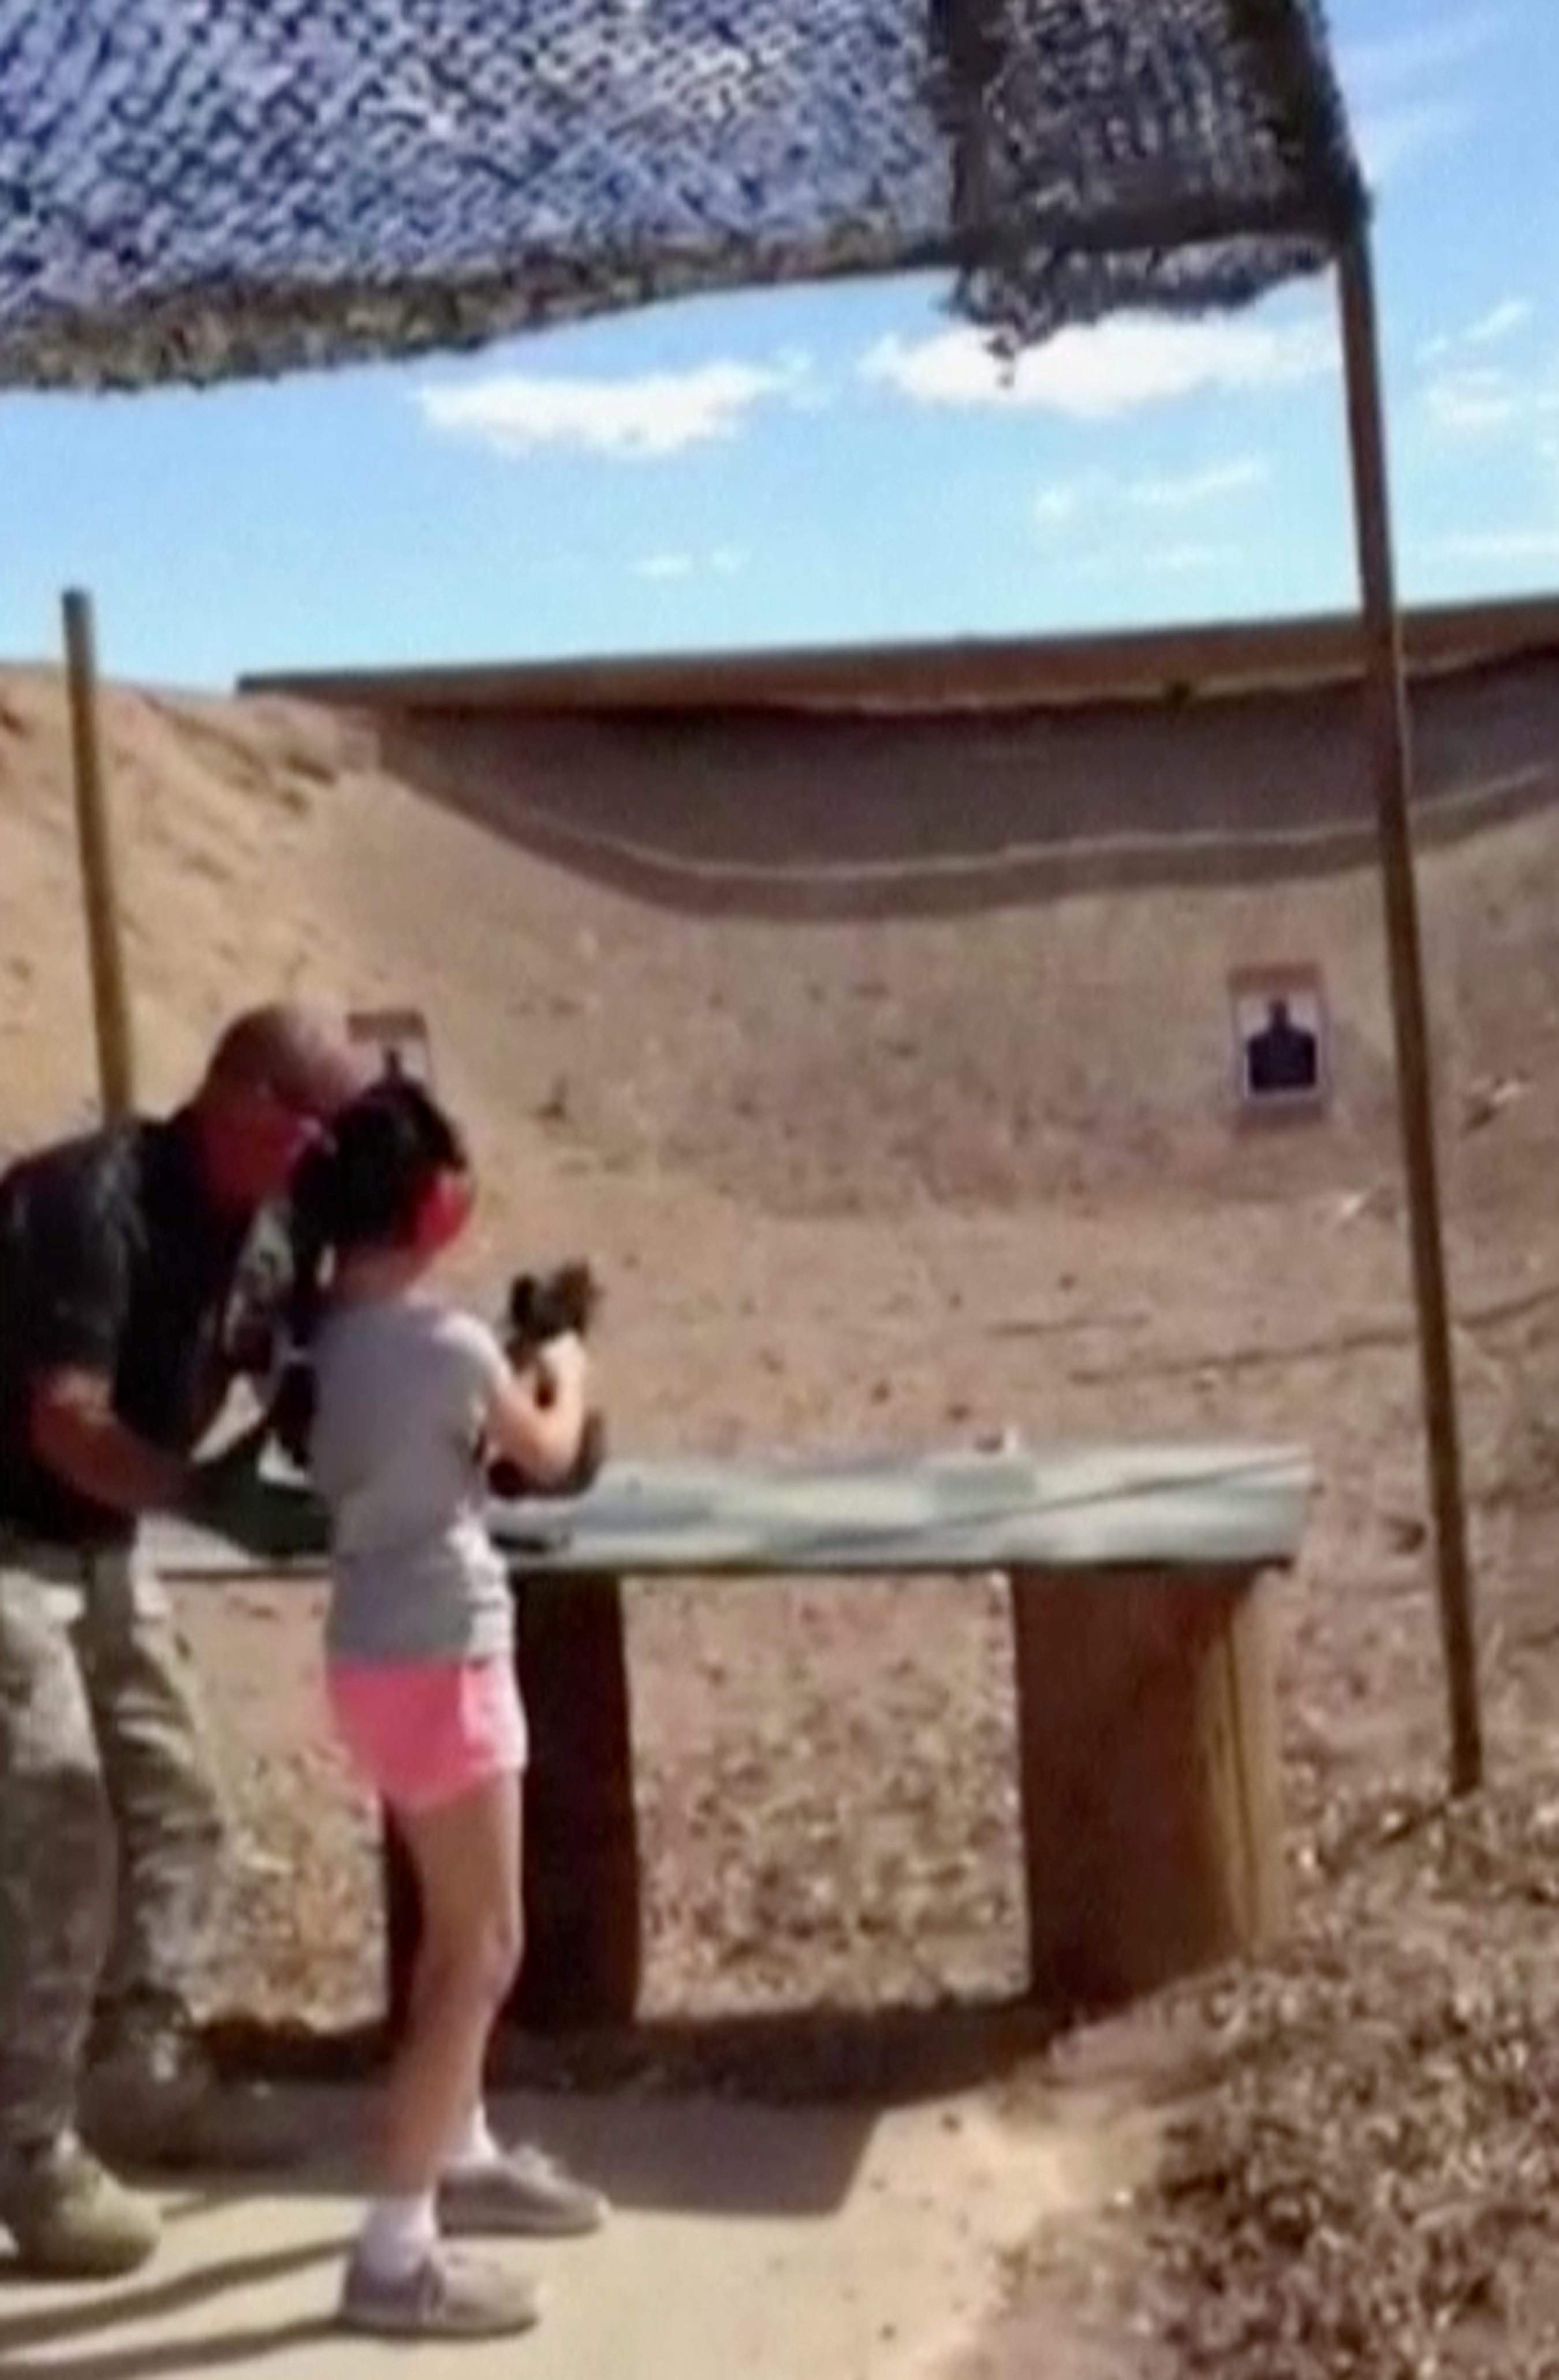 Family of girl who fired Uzi is devastated